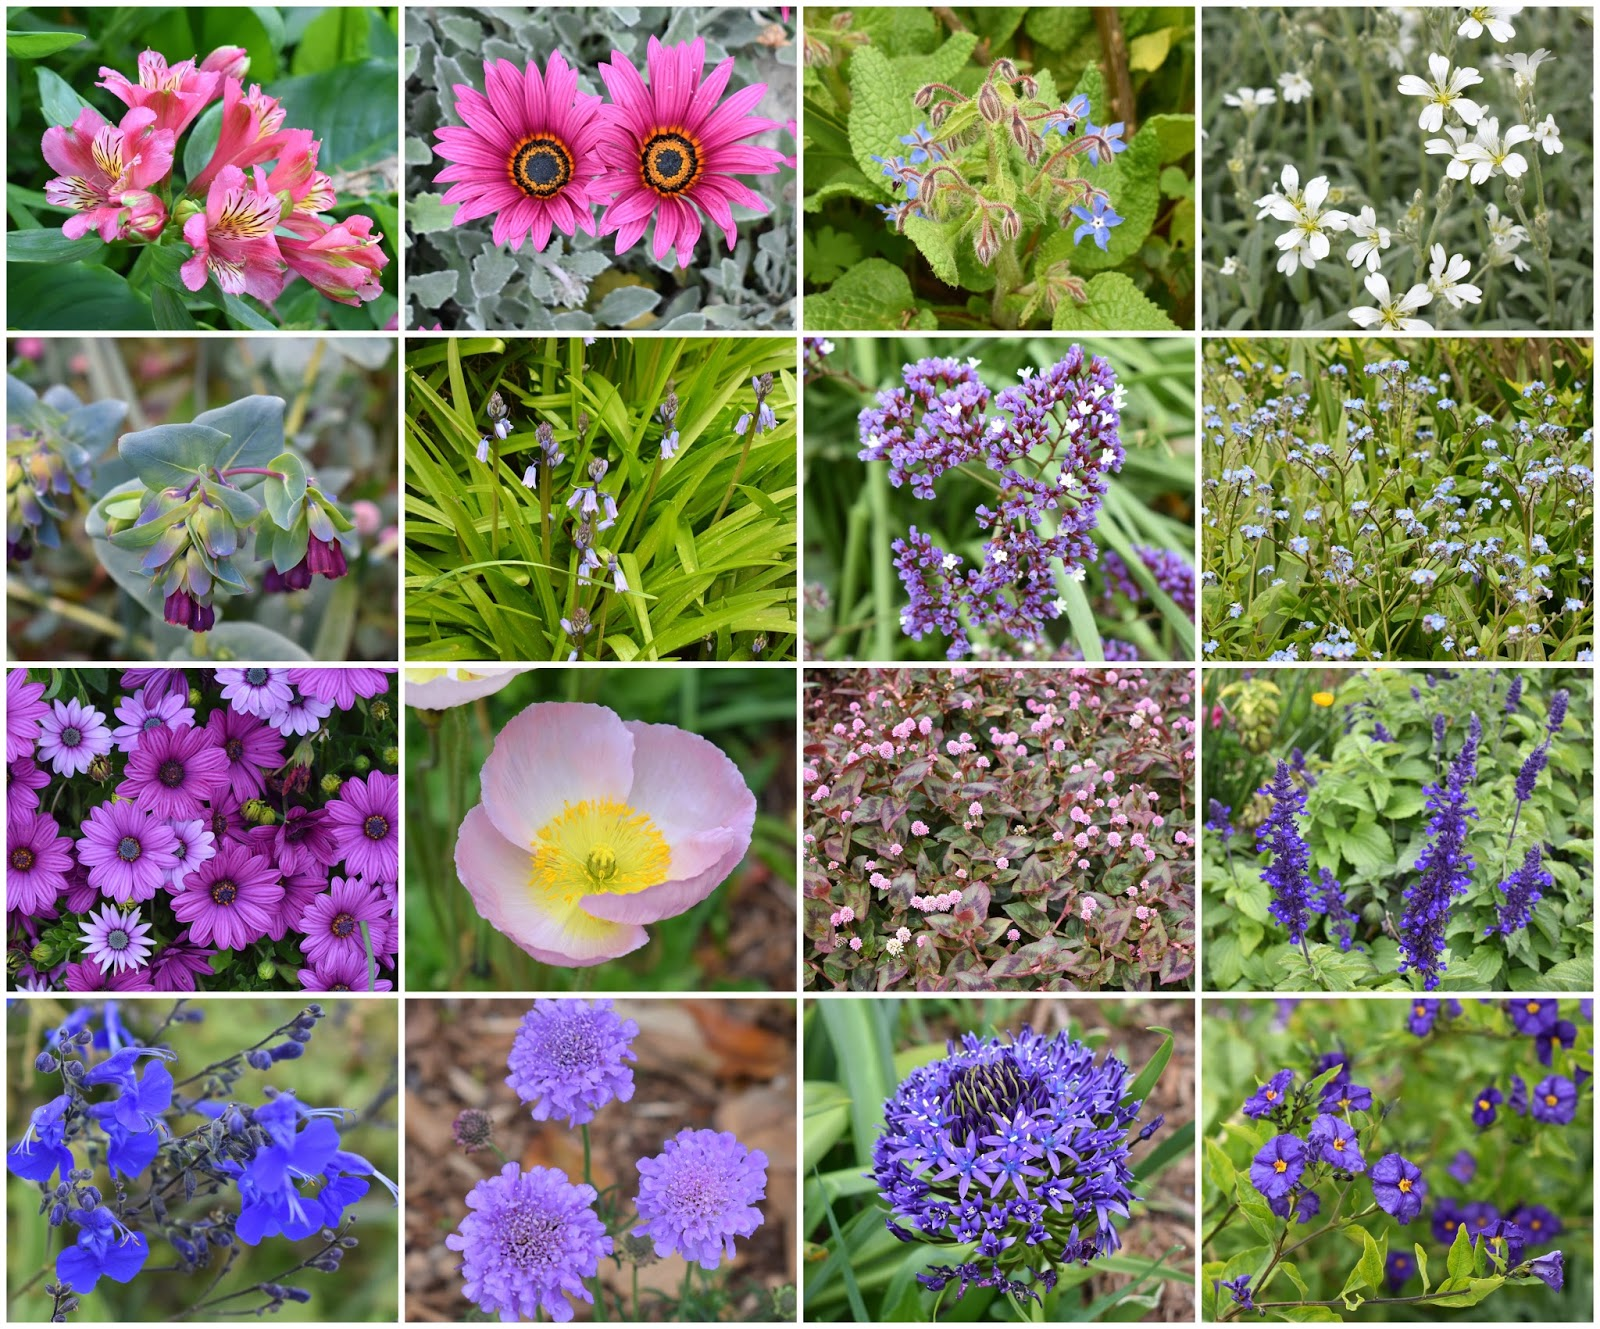 Late to the garden party local spring flower fest 2nd row cerinthe honeywort hyacinthoides spanish bluebells limonium perezii sea lavender and myosotis forget me nots izmirmasajfo